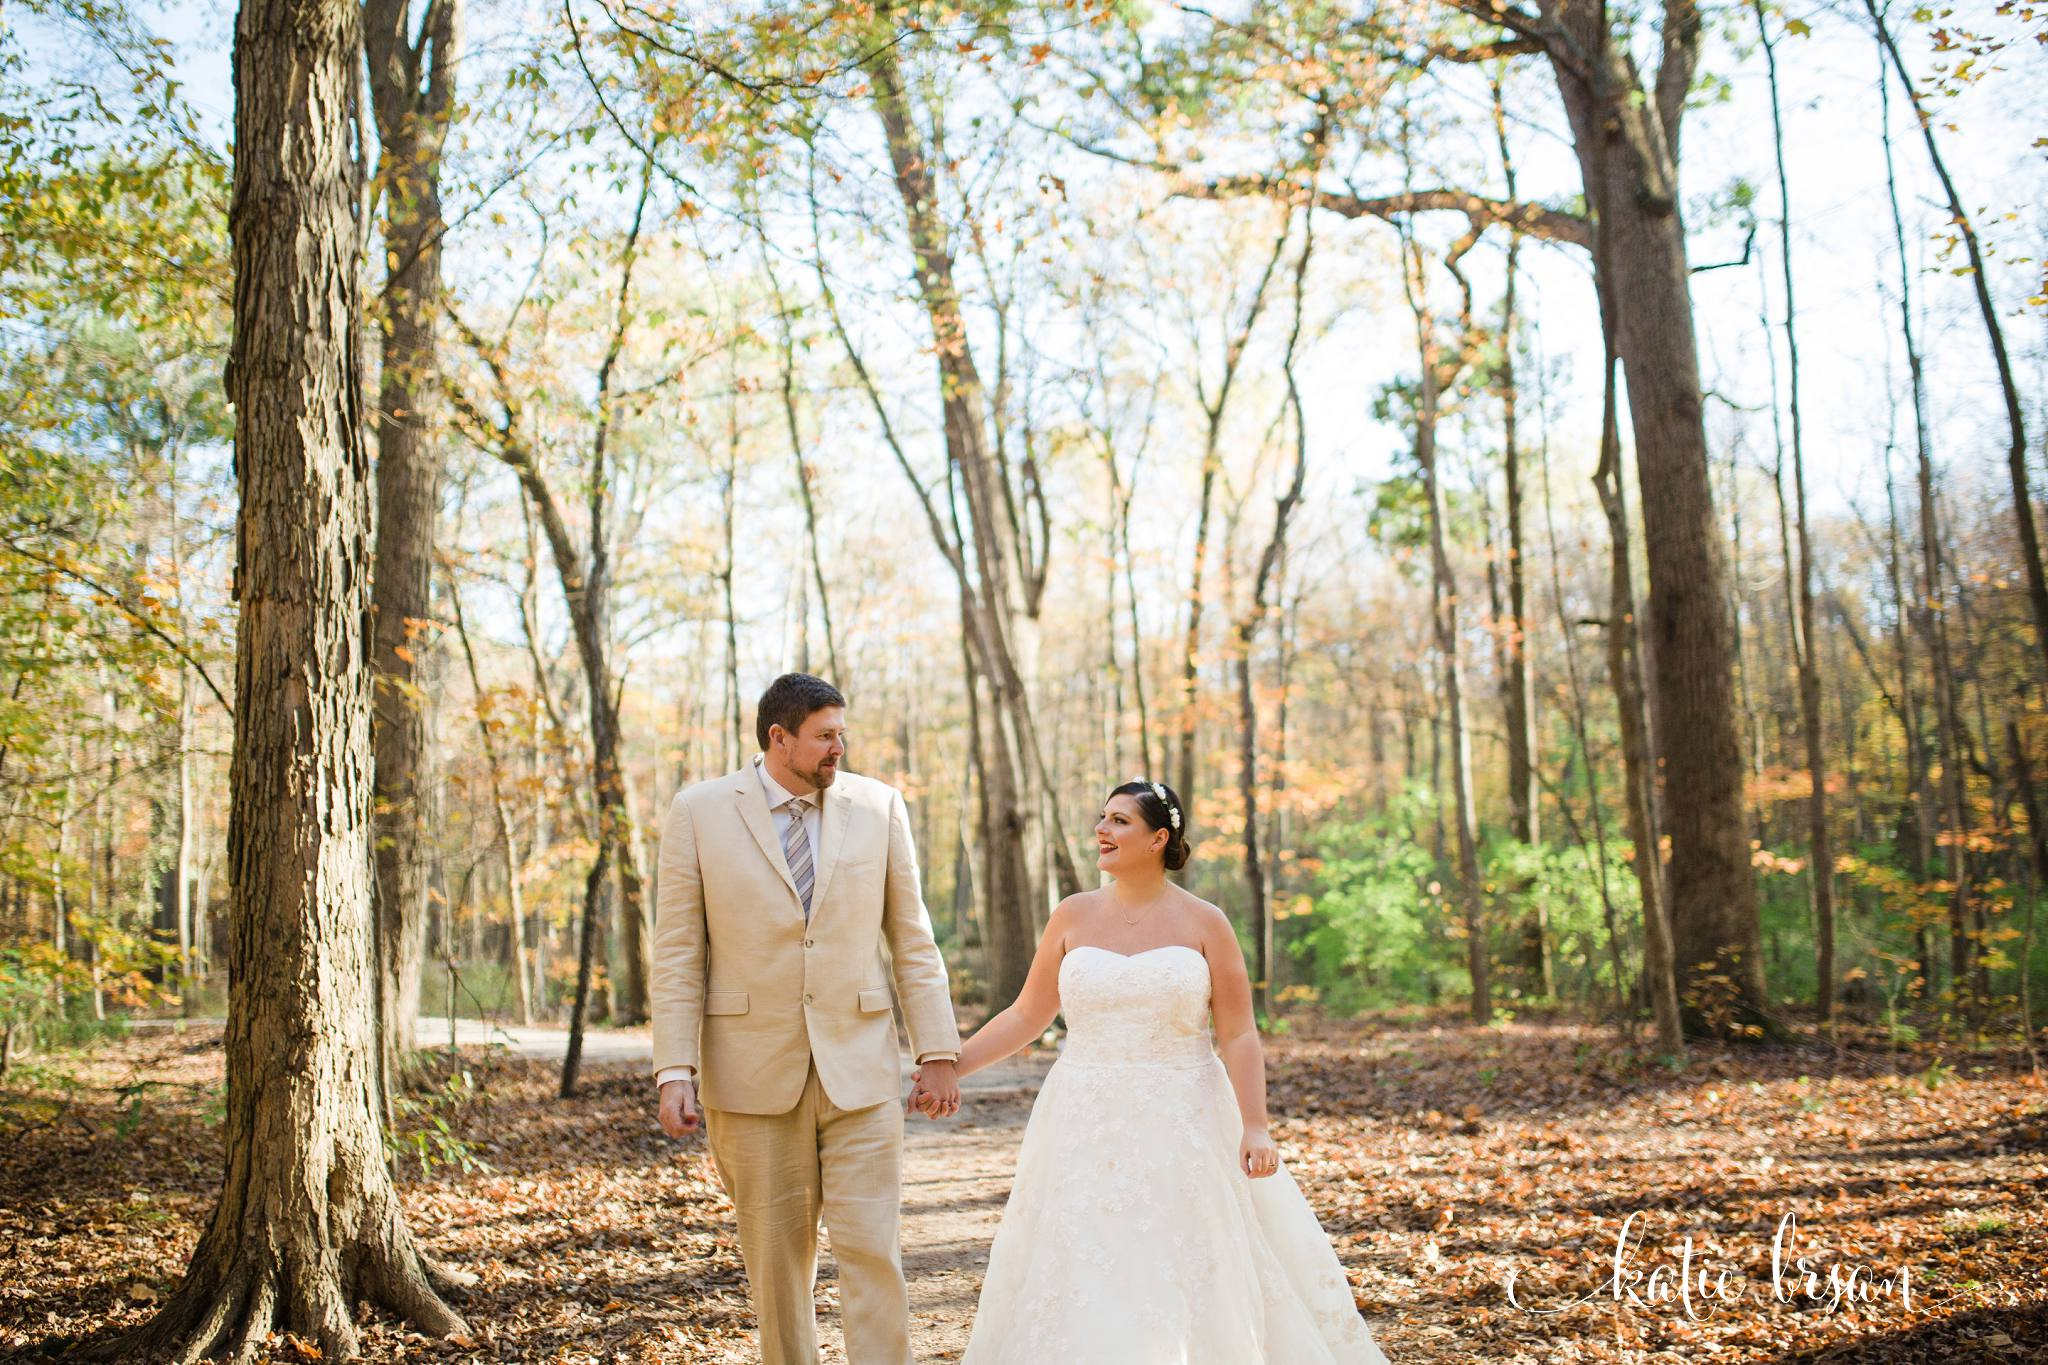 DownersGrove_BackyardWedding_GilbertsPark_1072.jpg